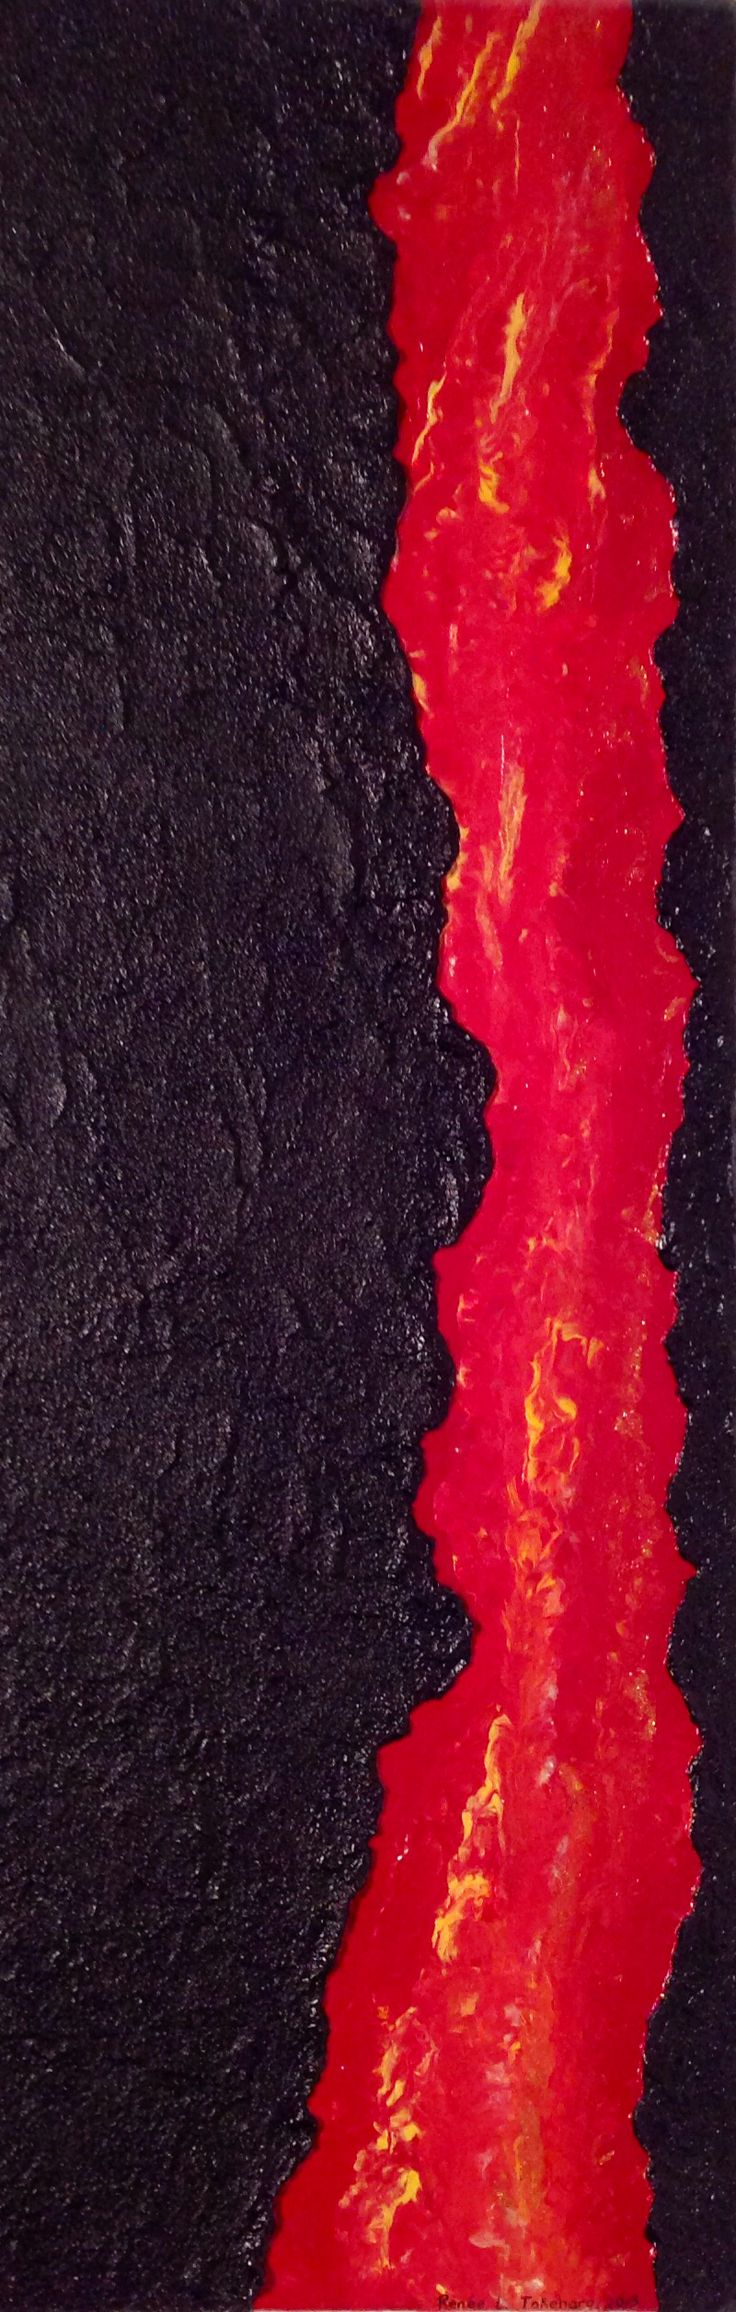 'Flowing Lava' by Renee Takehara is hot but won't burn a hole in your pocket